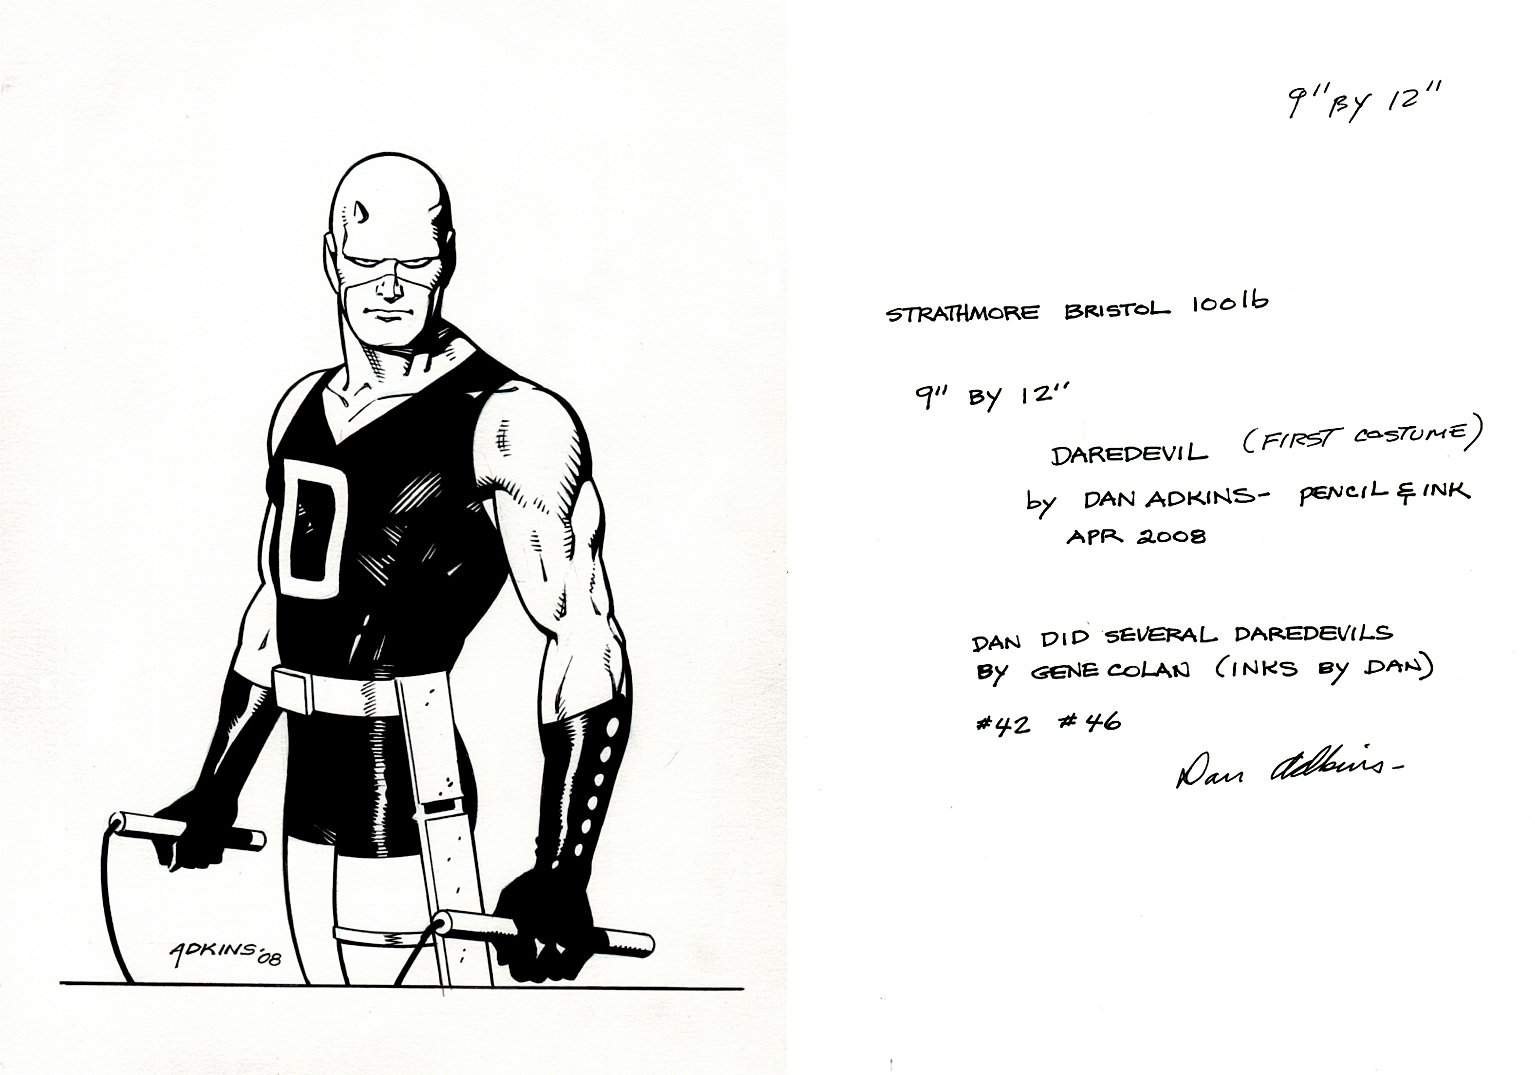 Daredevil Original 1964 Costume Pinup (SOLD LIVE ON 'DUELING DEALERS OF COMIC ART' EPISODE #22 PODCAST ON 6-16-2021 (RE-WATCH THIS FUNNY ART SELLING SHOW HERE)